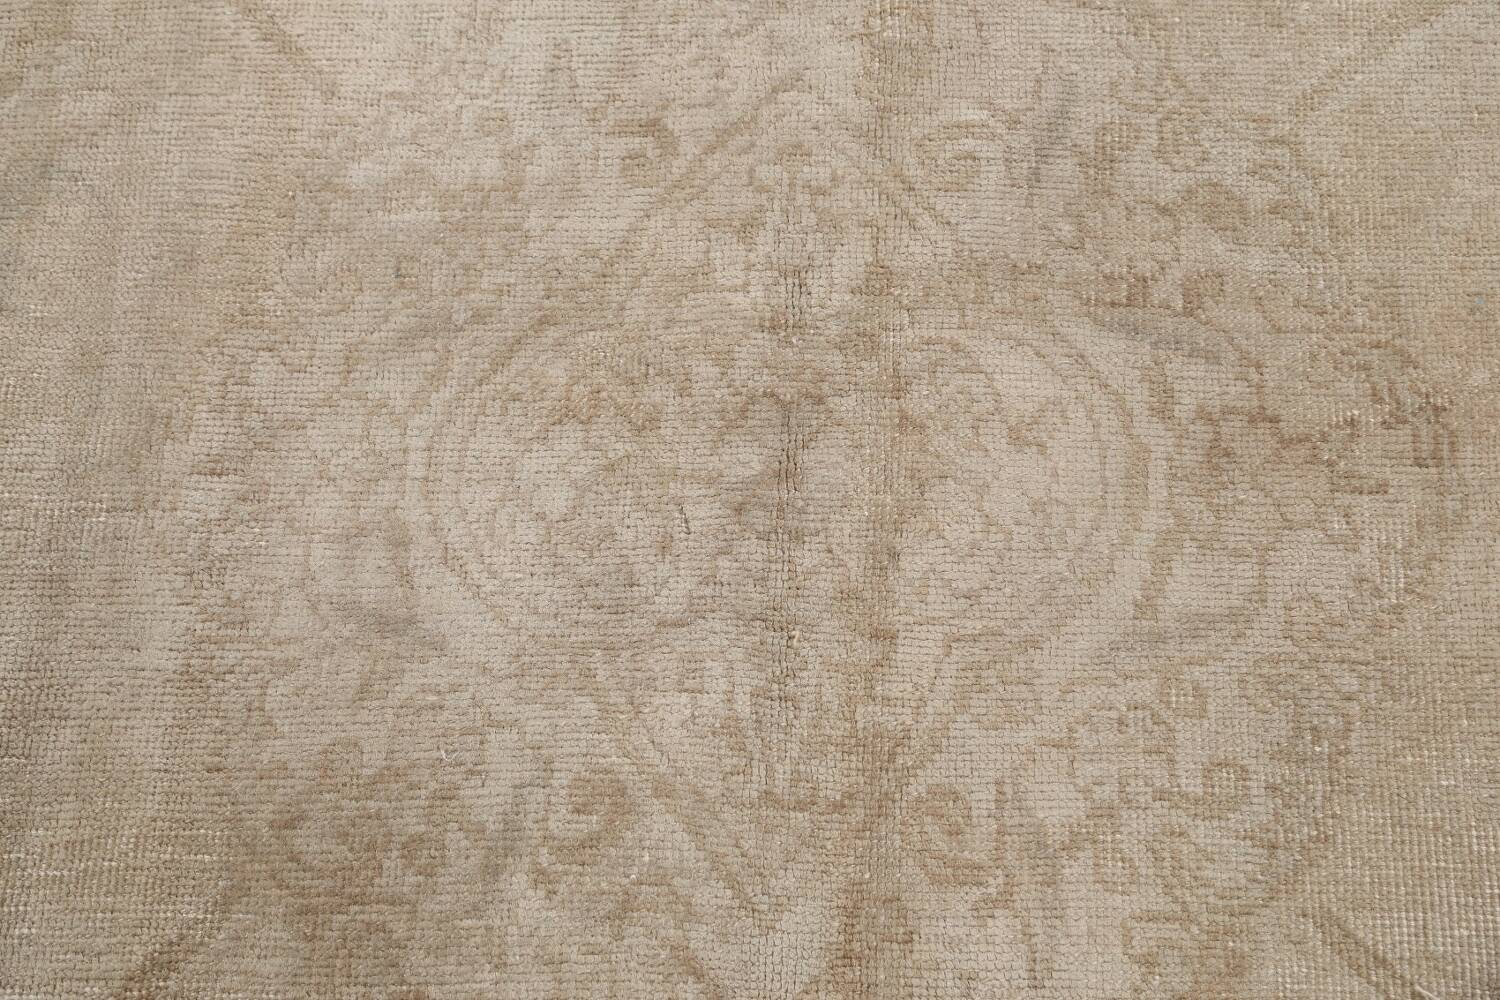 Antique Muted Floral Tabriz Persian Area Rug 7x11 image 11